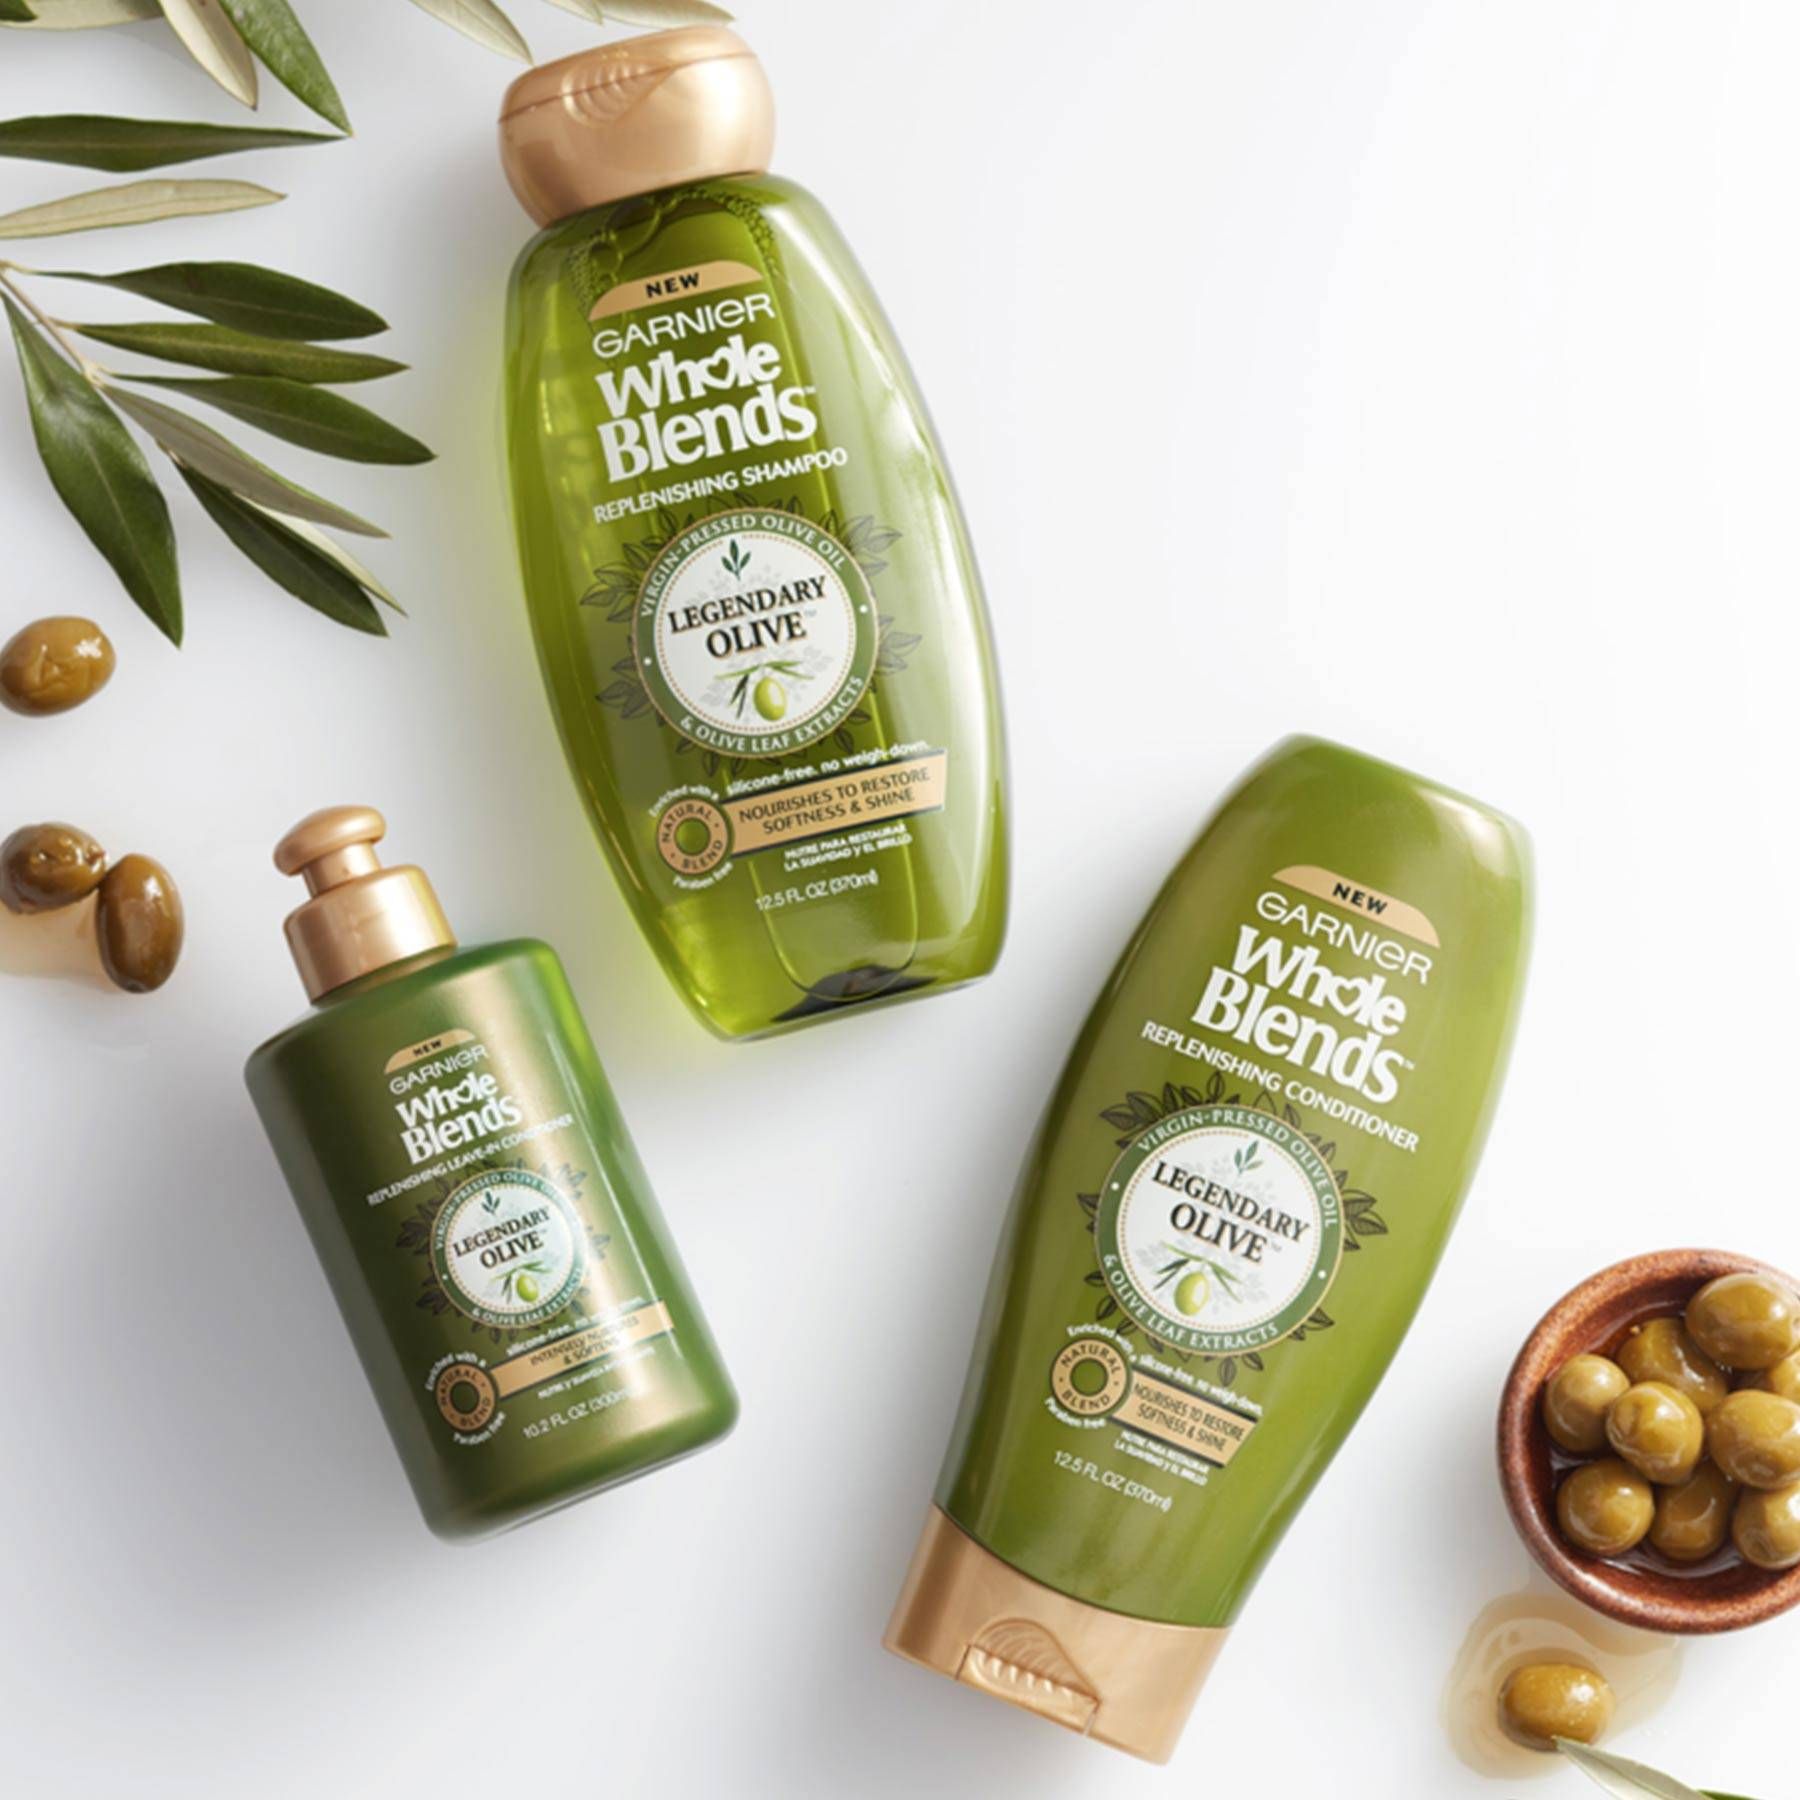 Whole Blends Legendary Olive Shampoo, Legendary Olive Conditioner, and Legendary Olive Leave-In Conditioner on a white background next to an earthen bowl of green olives in olive juice with some spilled out and olive leaves.